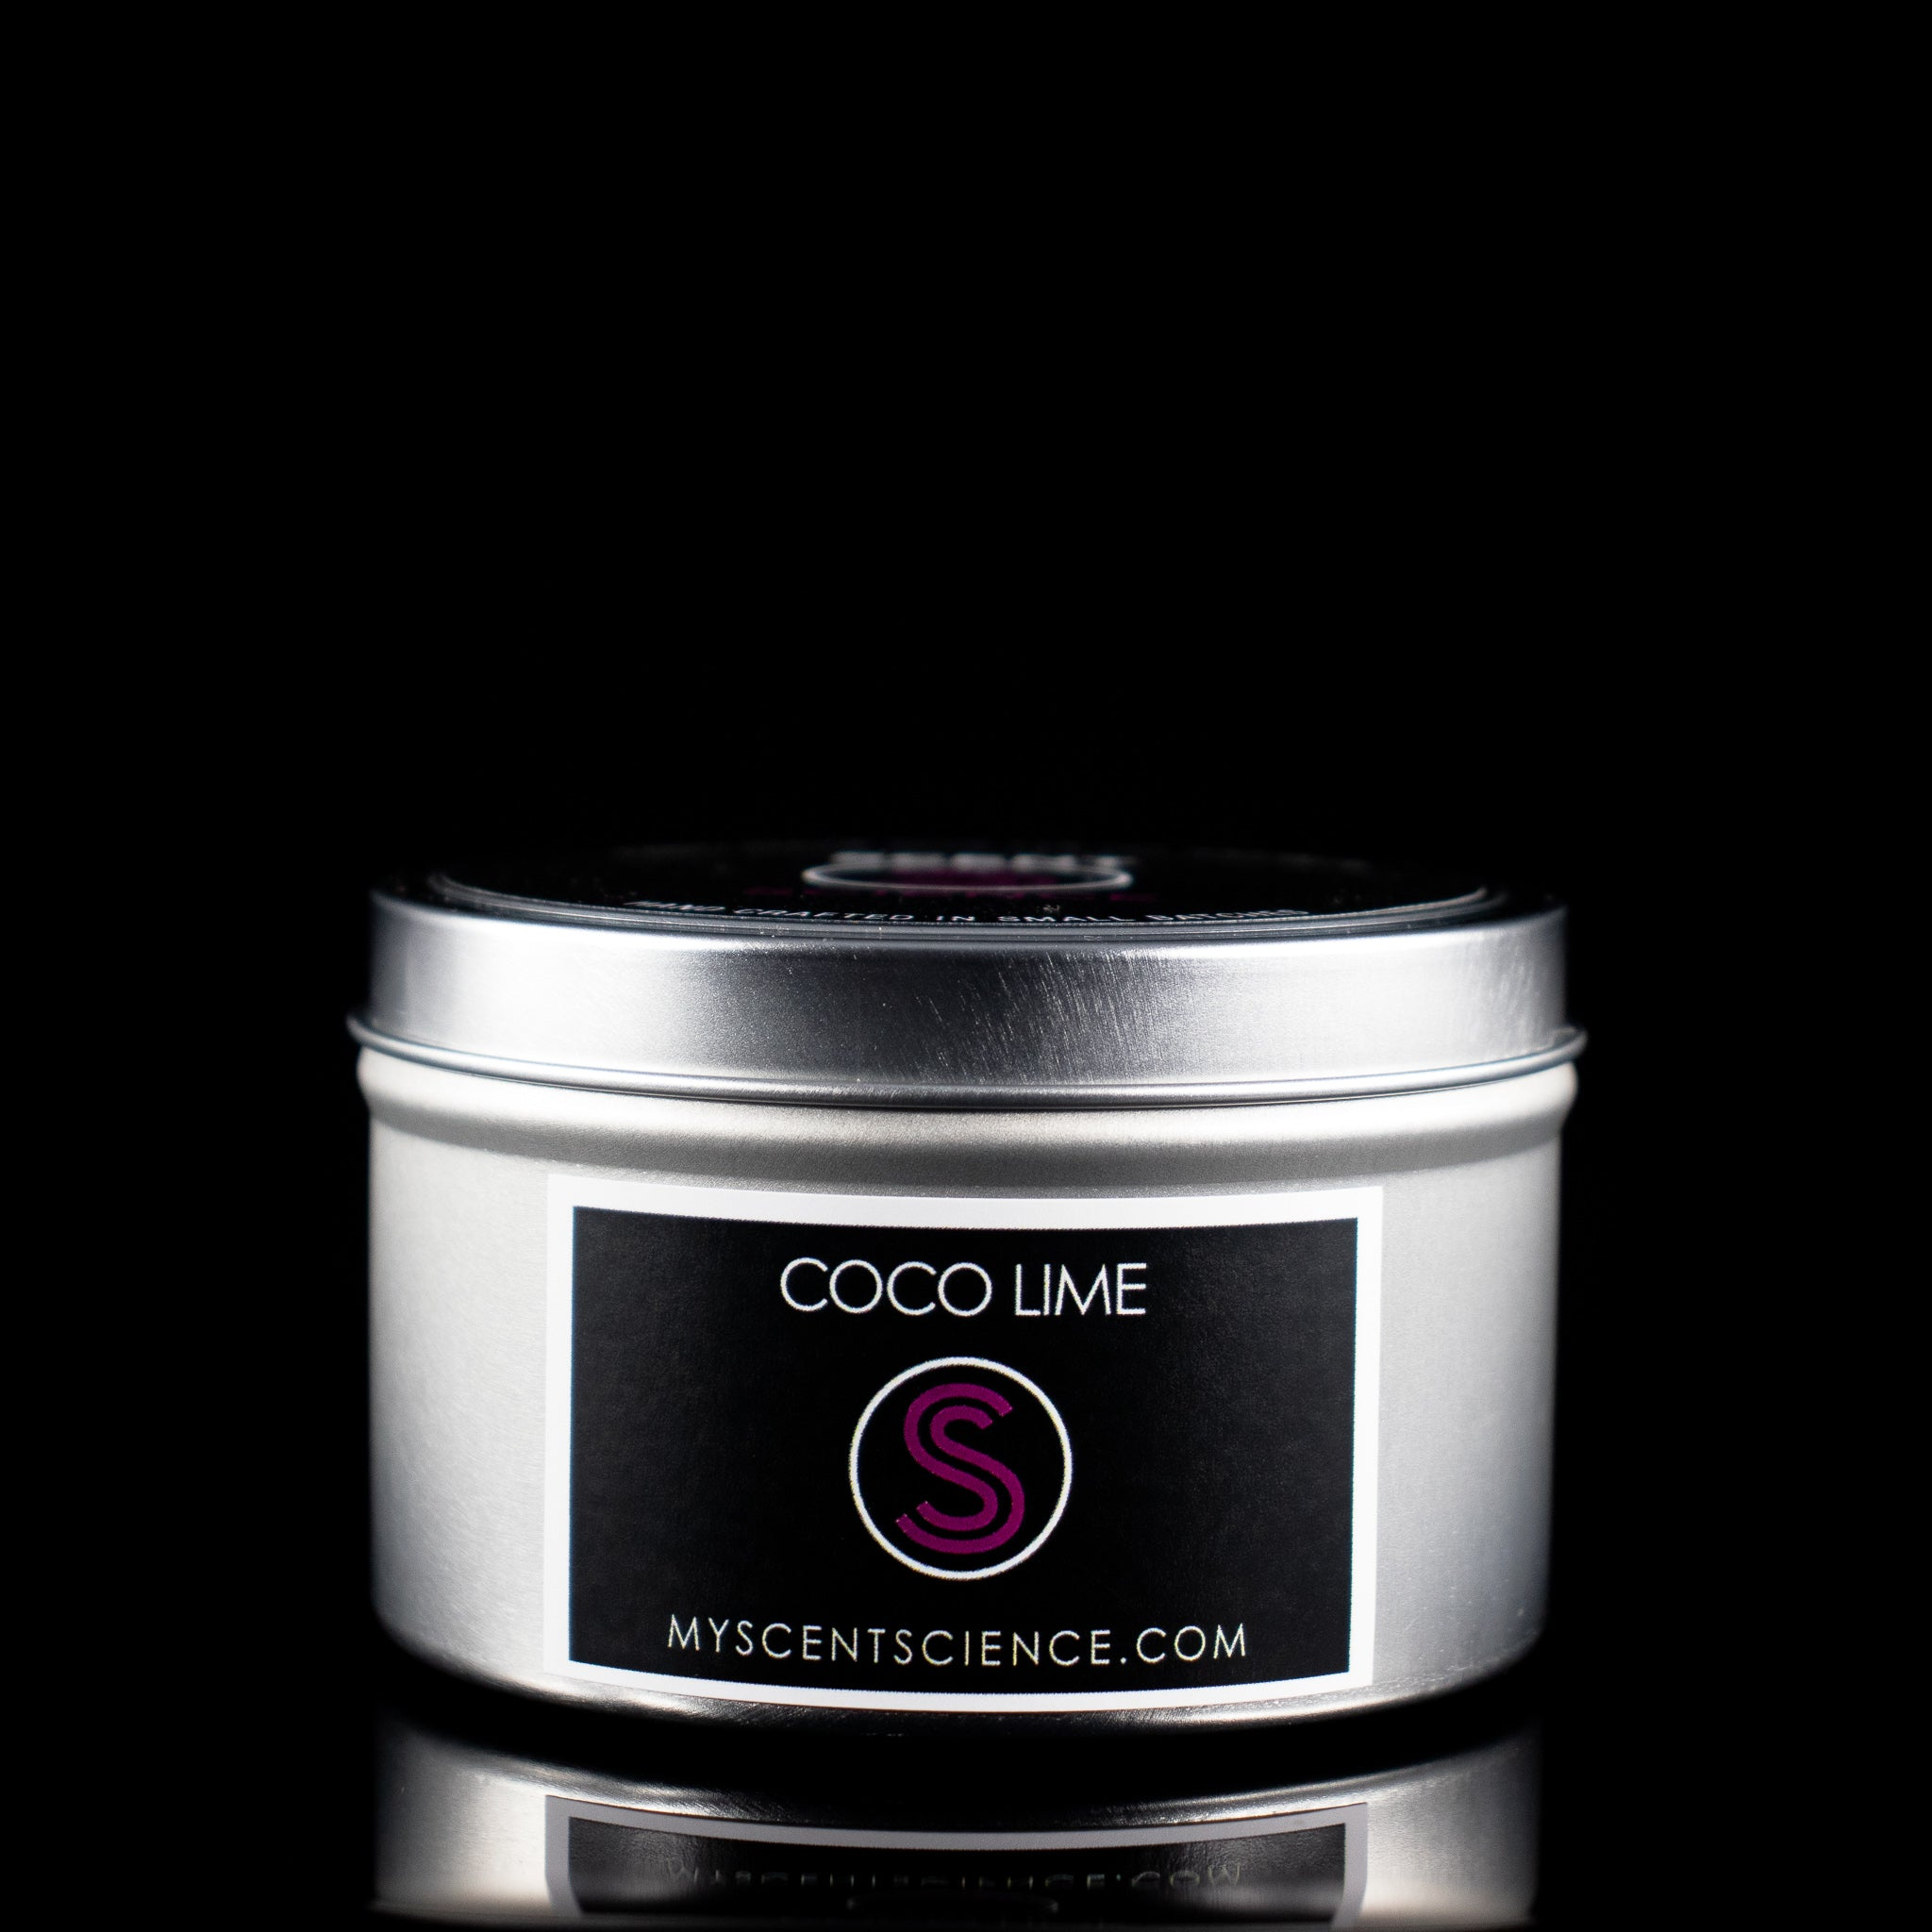 Coco Lime Travel Tin